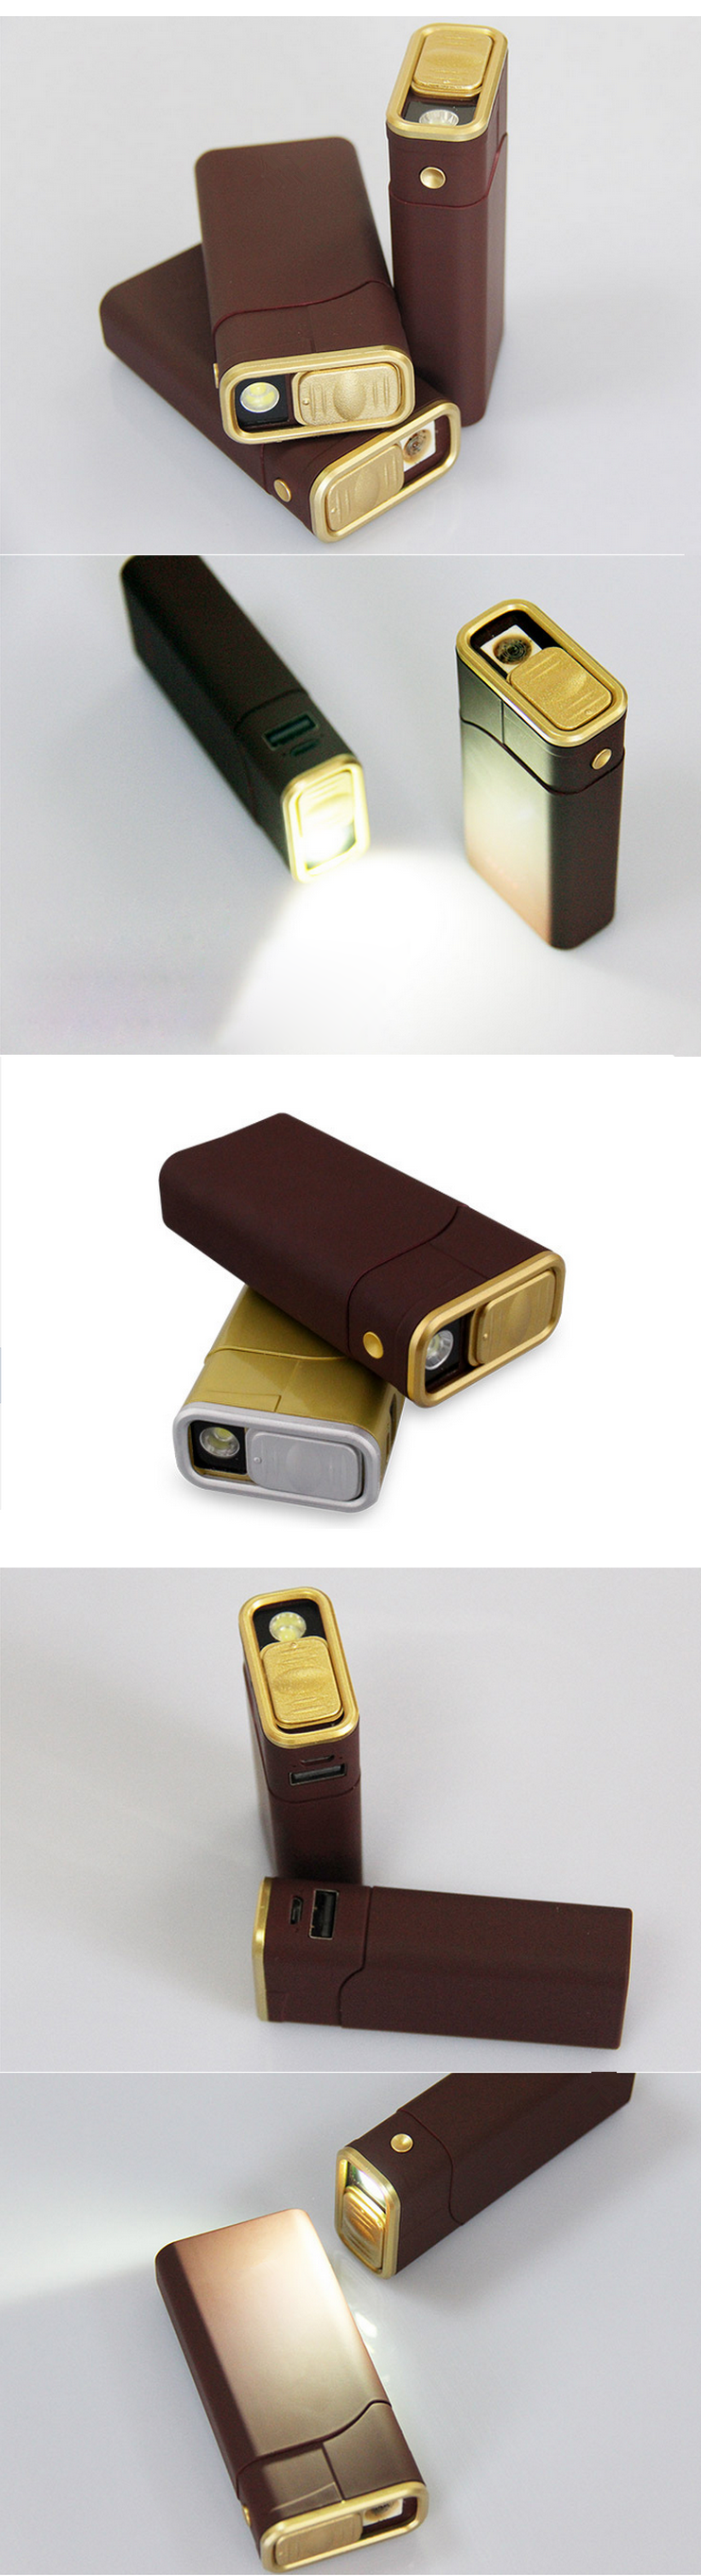 toptai light power bank10